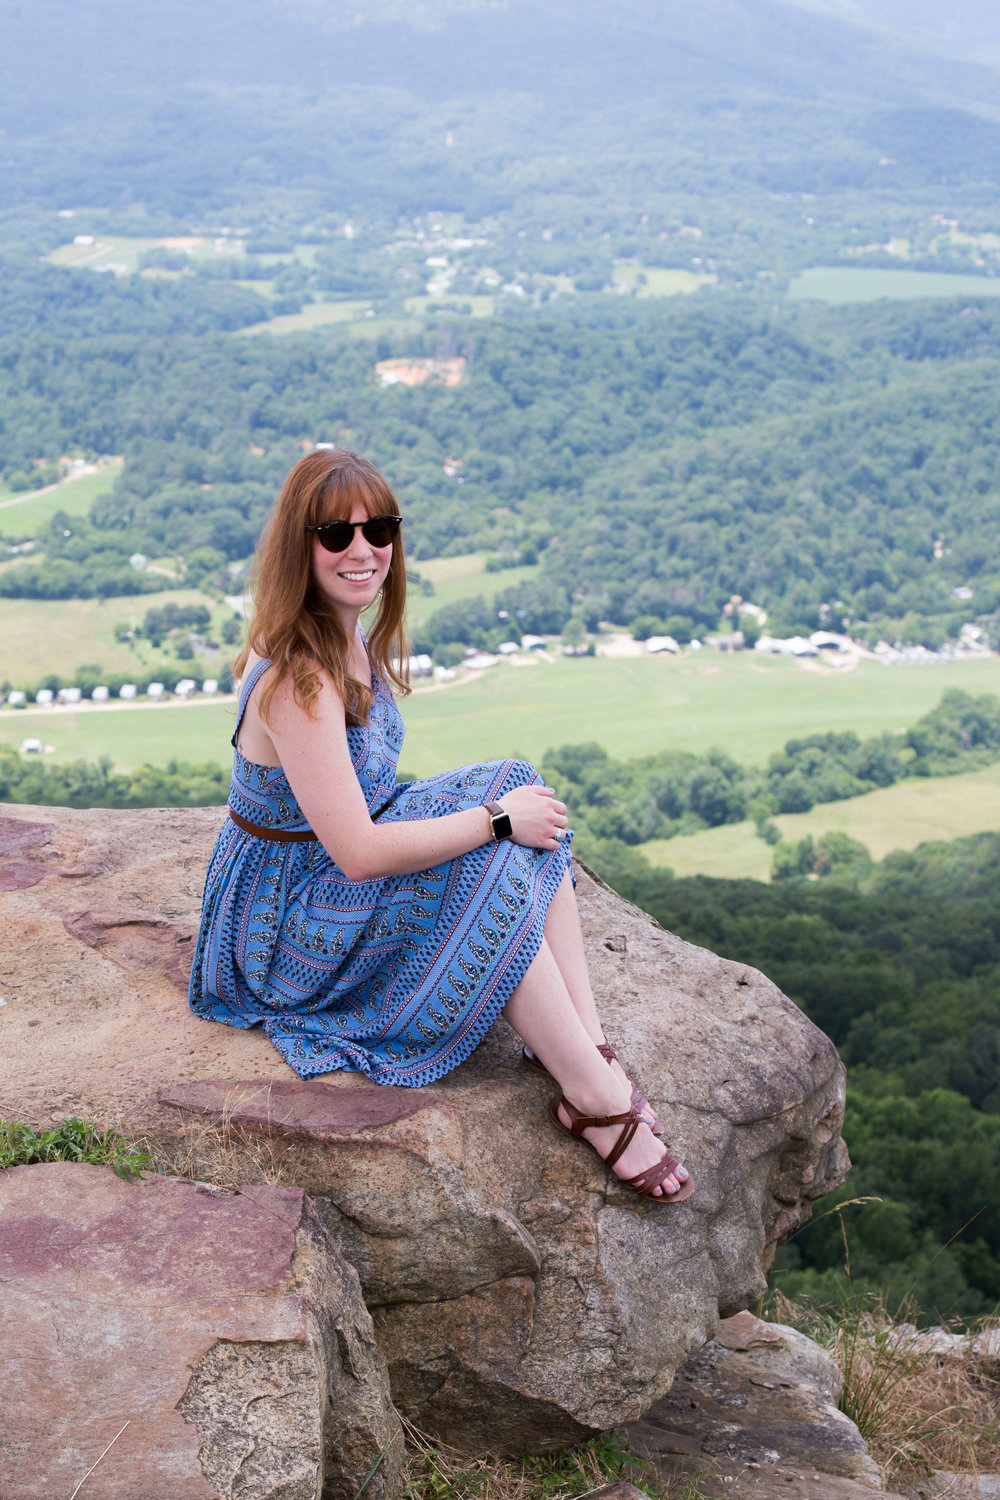 The perfect little blue summer sundress by Everly along with my favorite Fossil bag and Madewell belt. Enjoying the views at the Lookout Mountain Flight Park in Chattanooga, Tennessee.